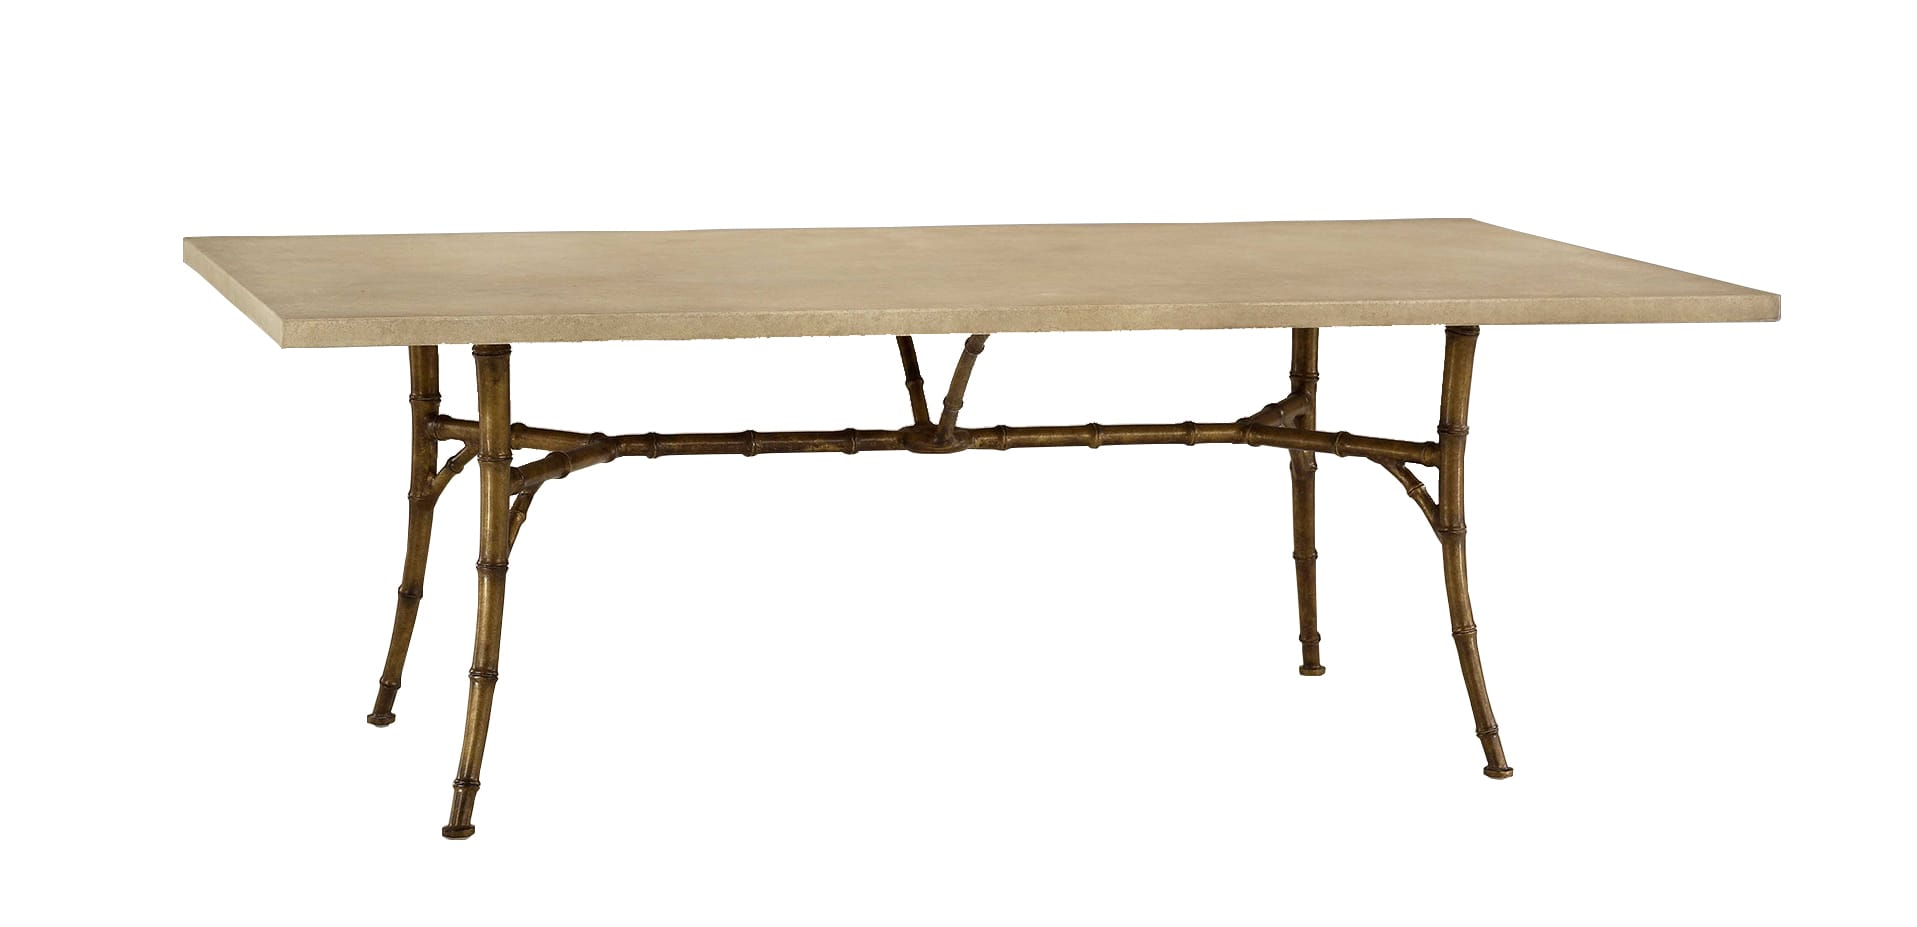 Bamboo Rectangular Dining Table - Tatiana Tafur for Modern Bamboo Dining Table  570bof